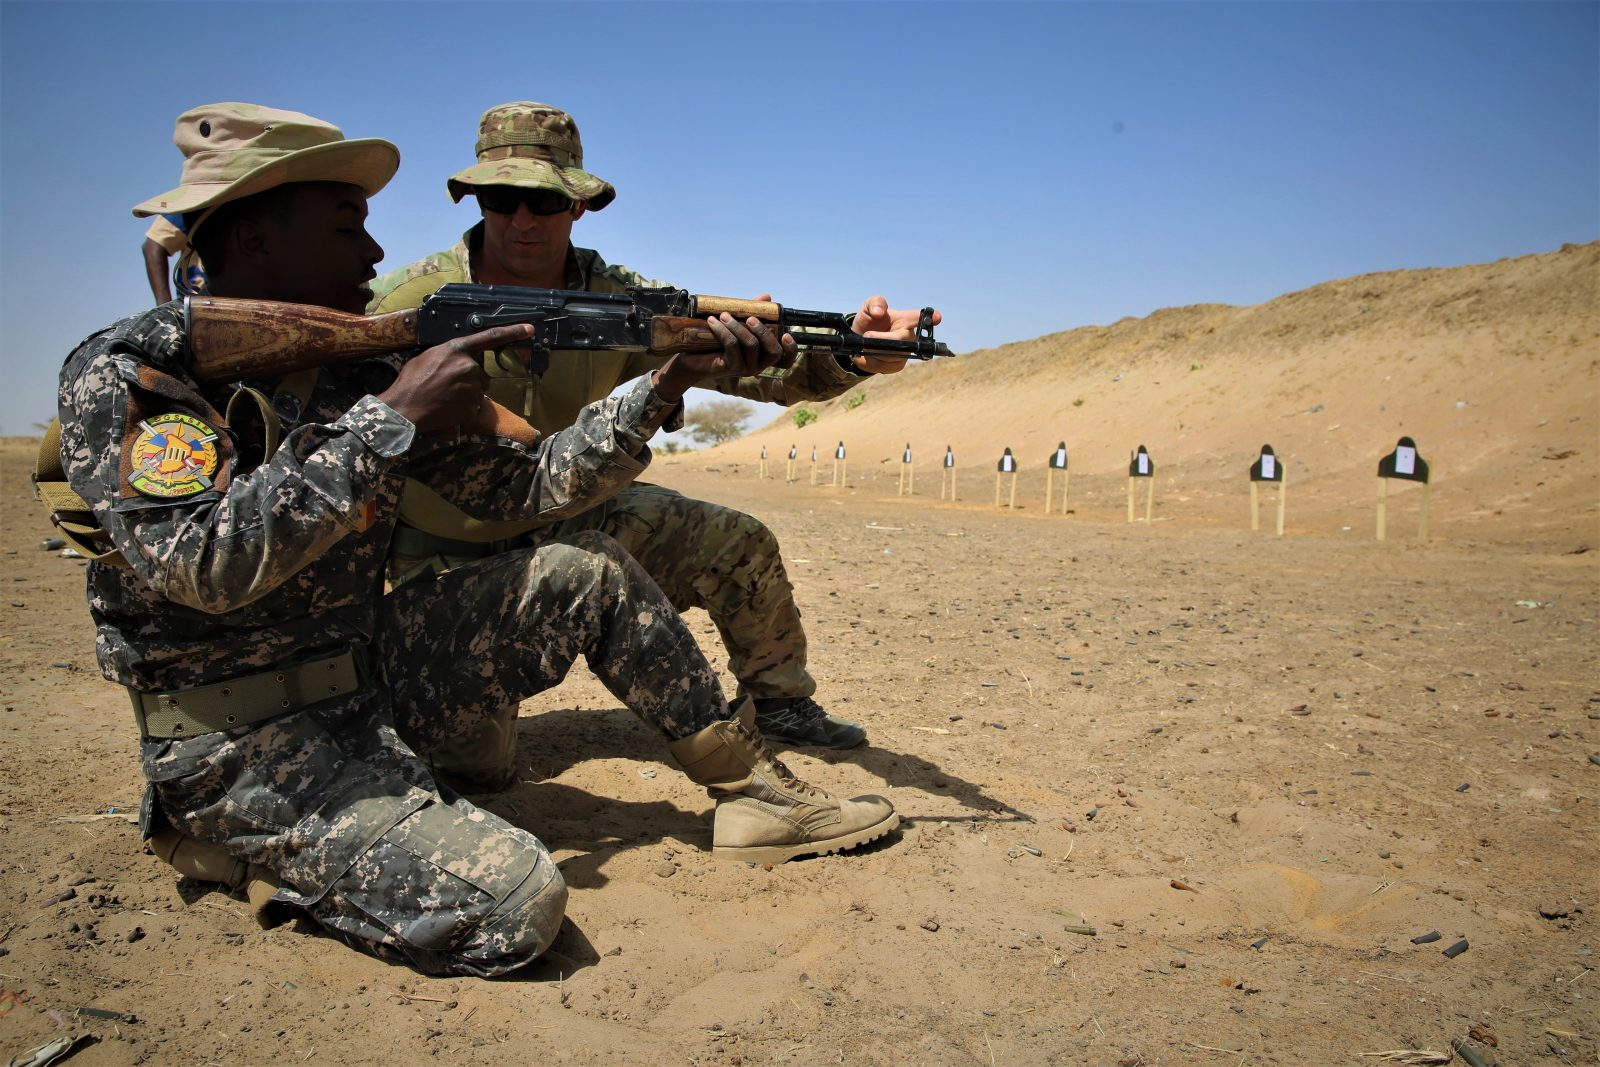 two soldiers doing marksmanship training with gun